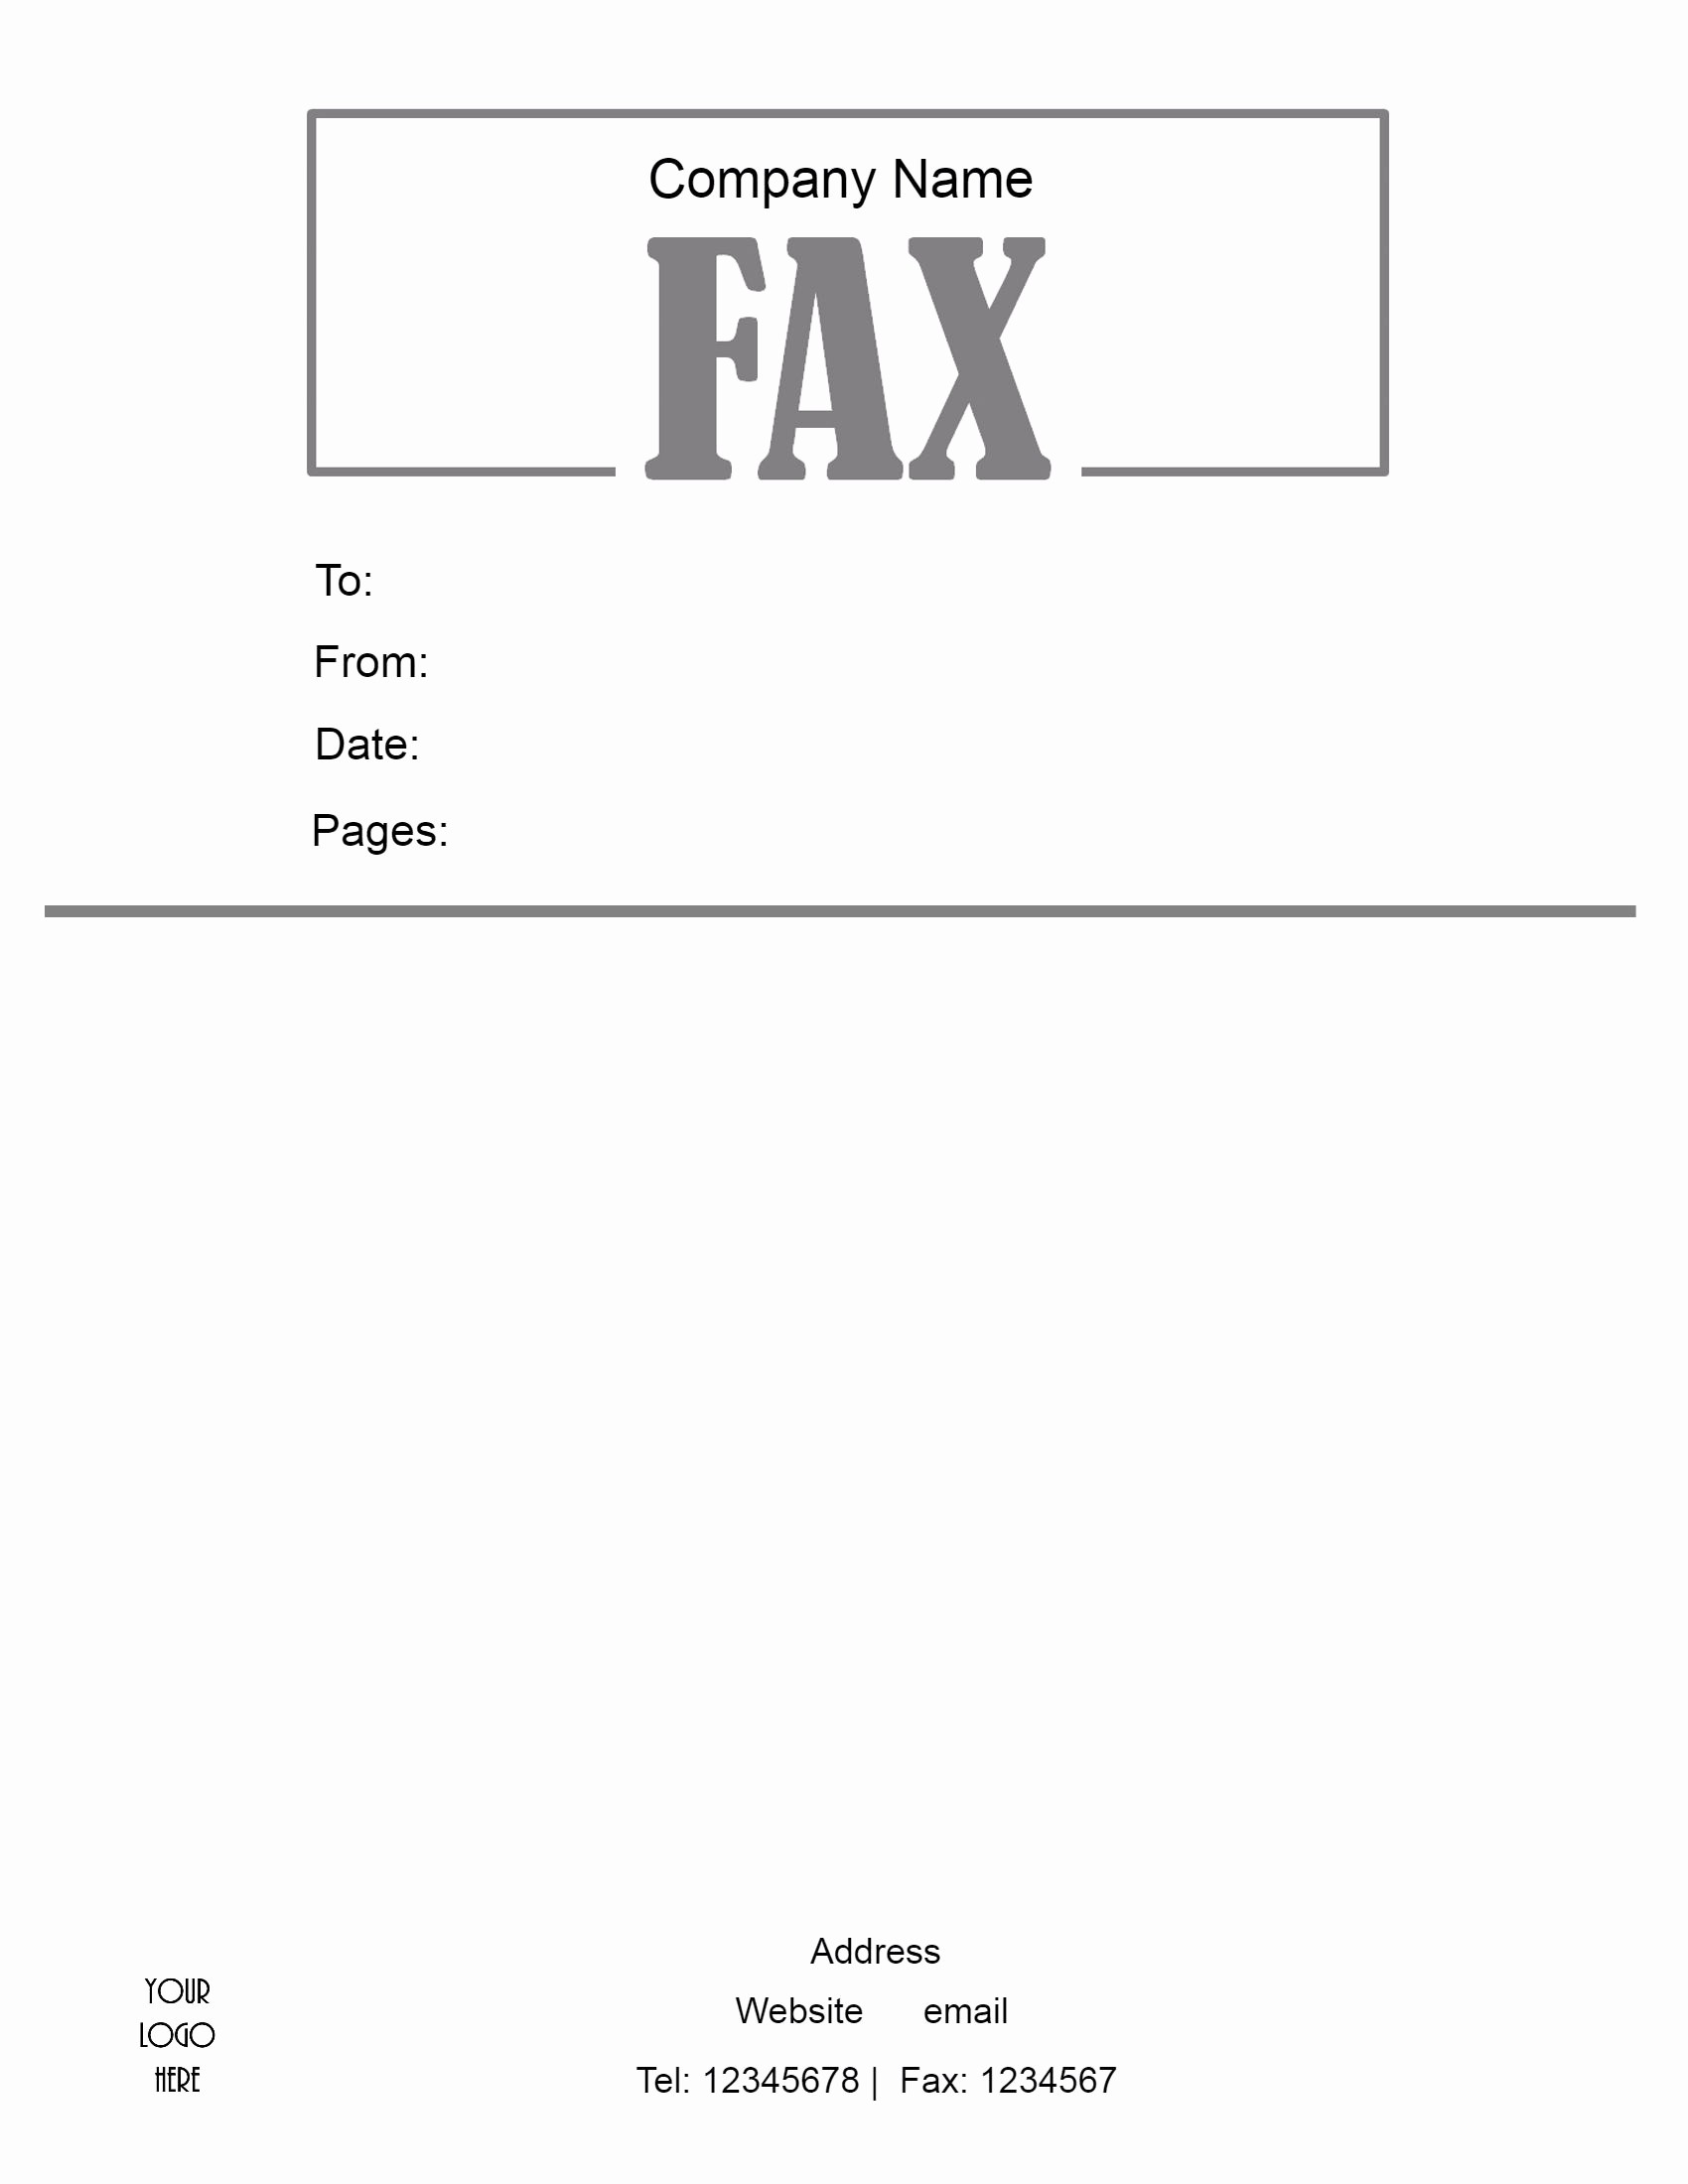 Print A Fax Cover Sheet Beautiful Free Fax Cover Sheet Template format Example Pdf Printable